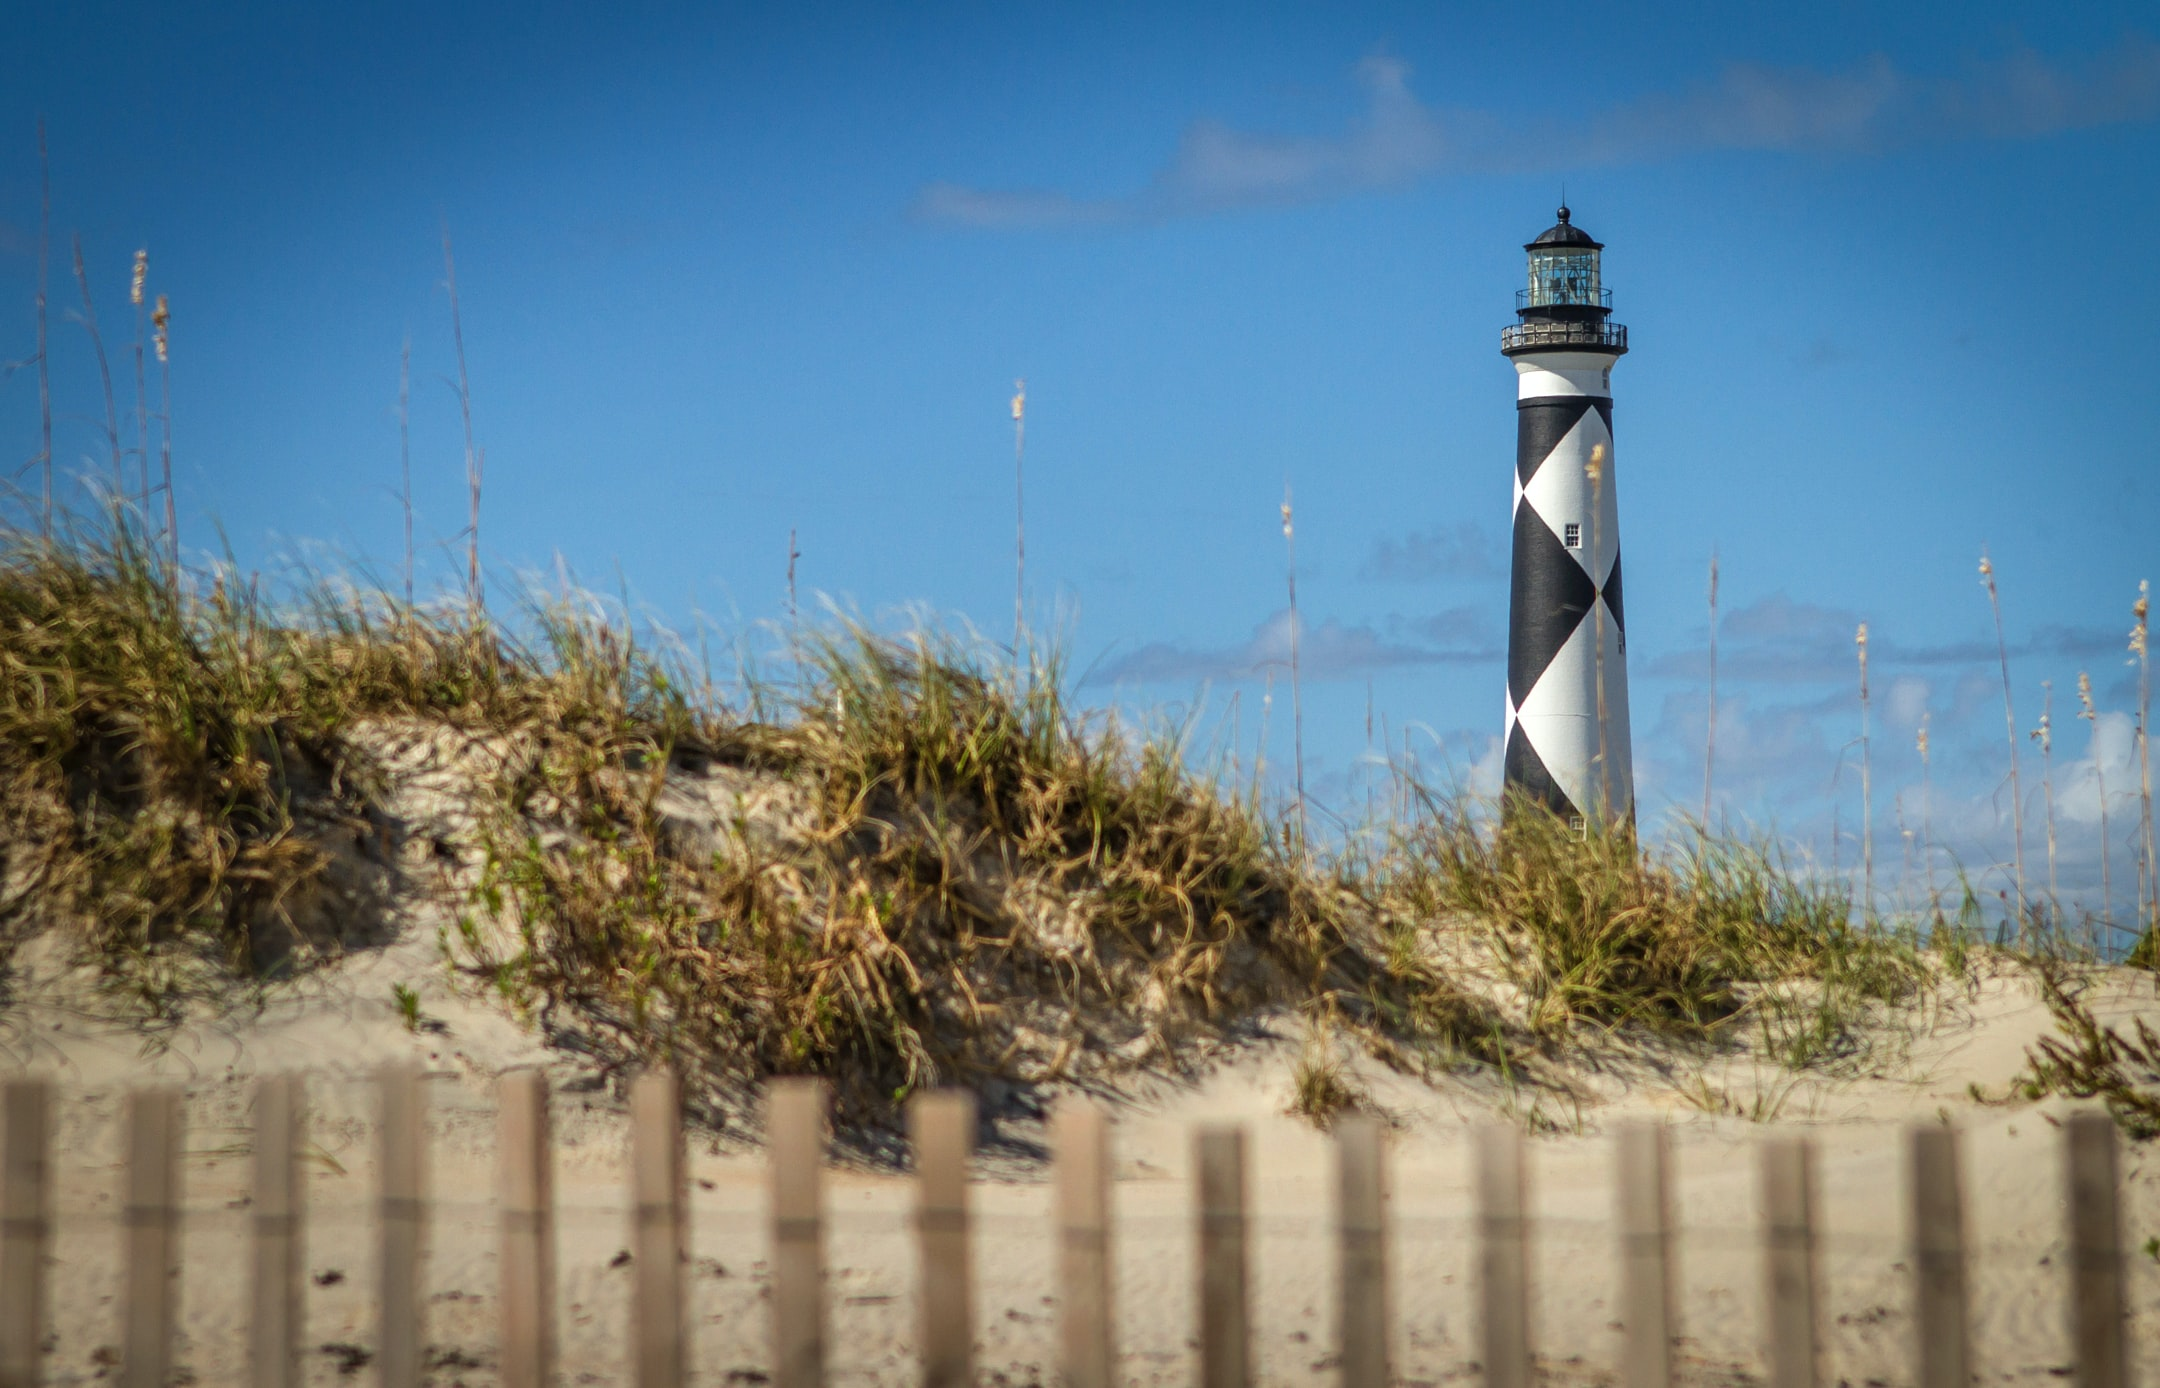 Wooden fence by a sand dune with a black and white lighthouse in the background at Cape Lookout